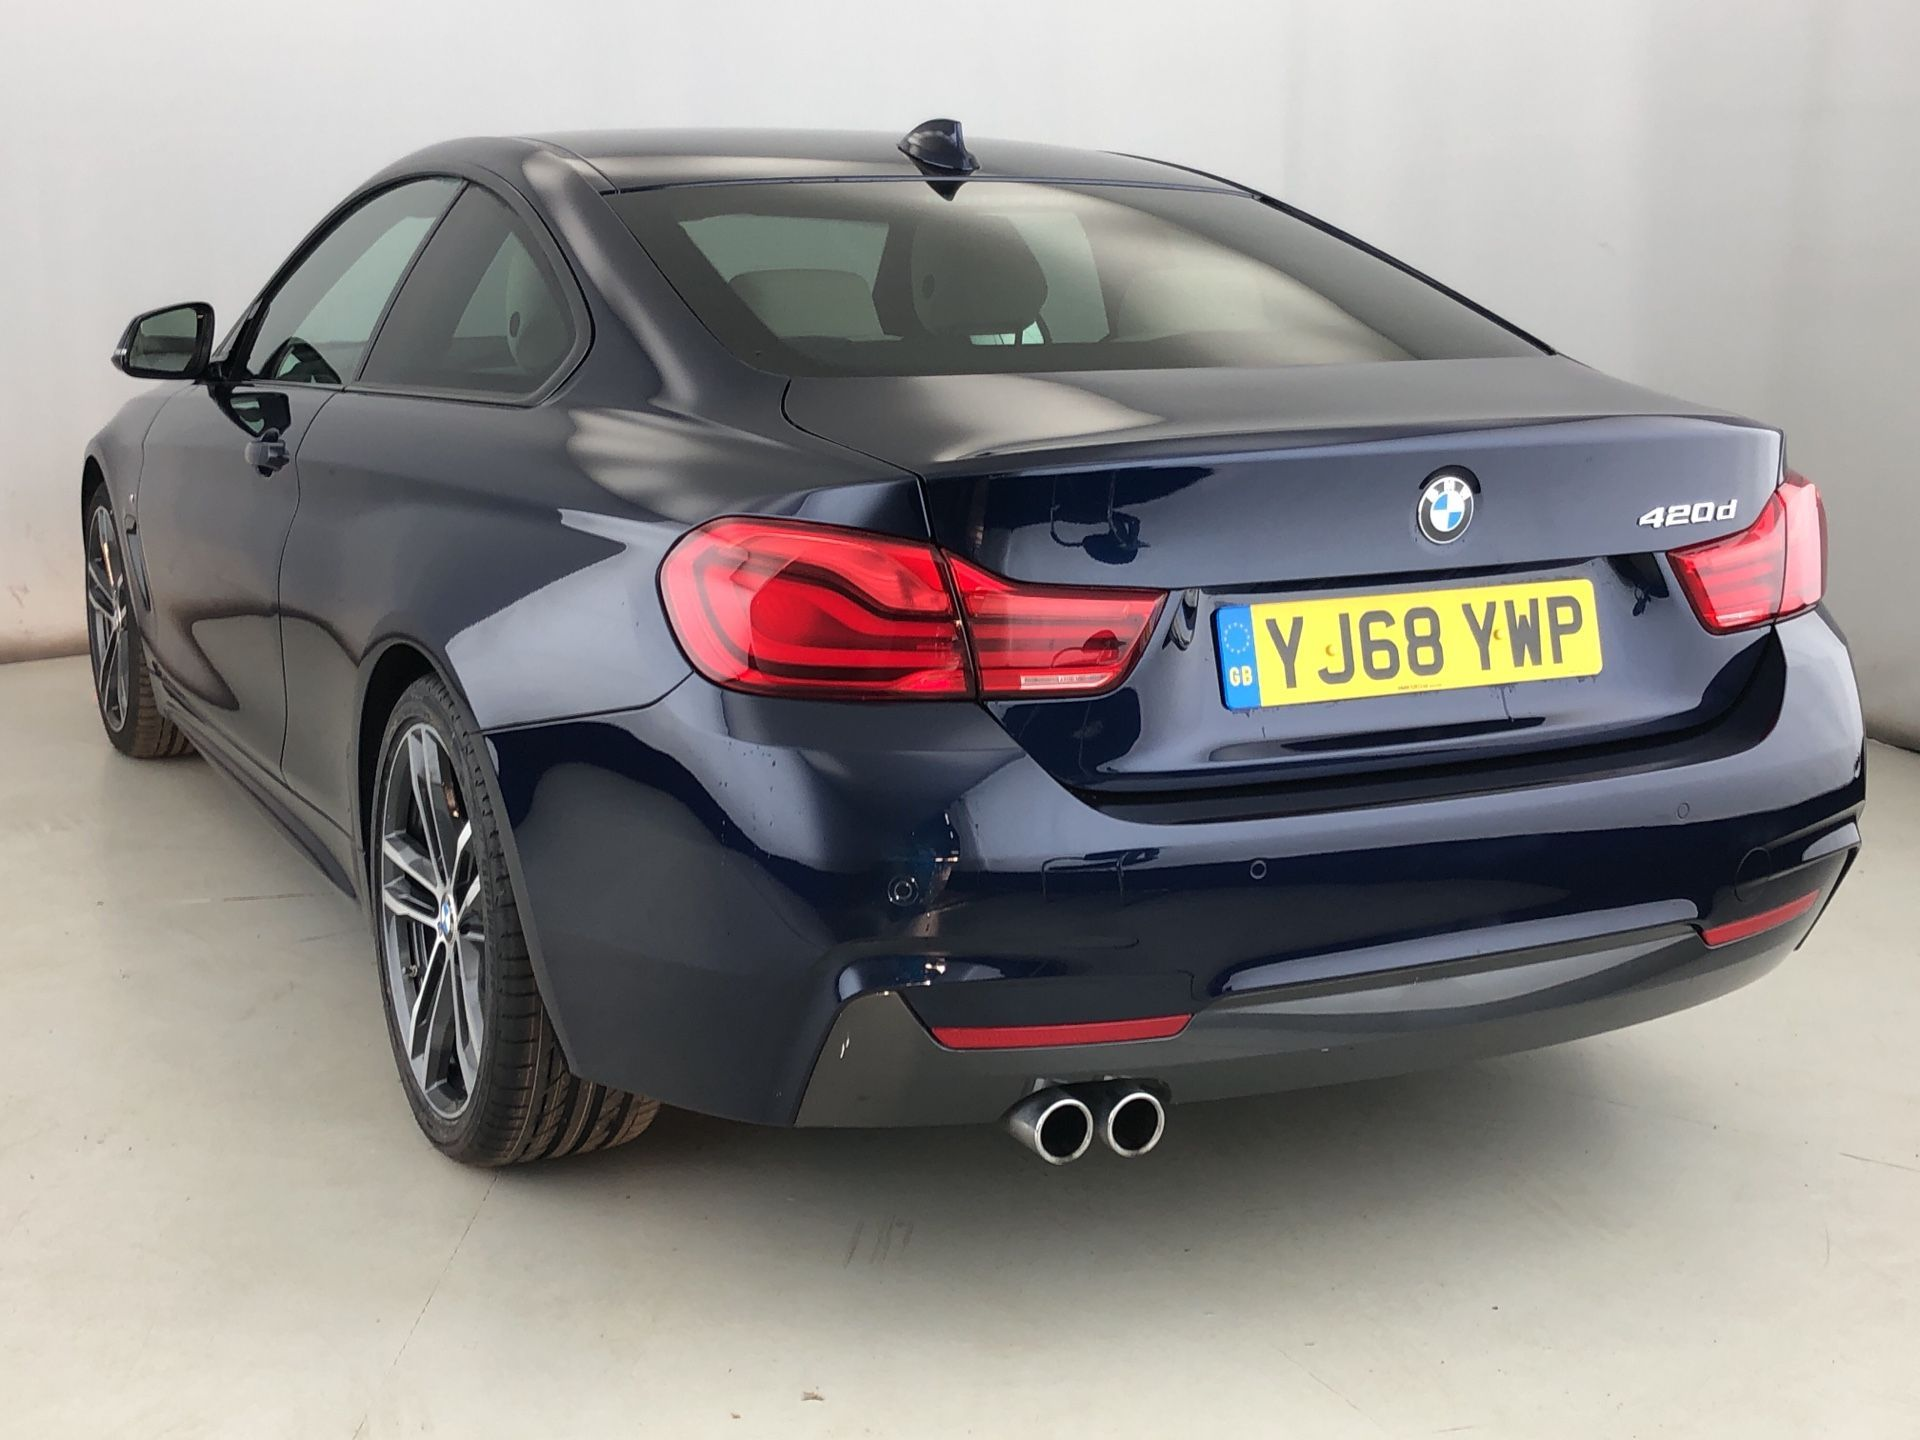 Image 2 - BMW 420d M Sport Coupe (YJ68YWP)